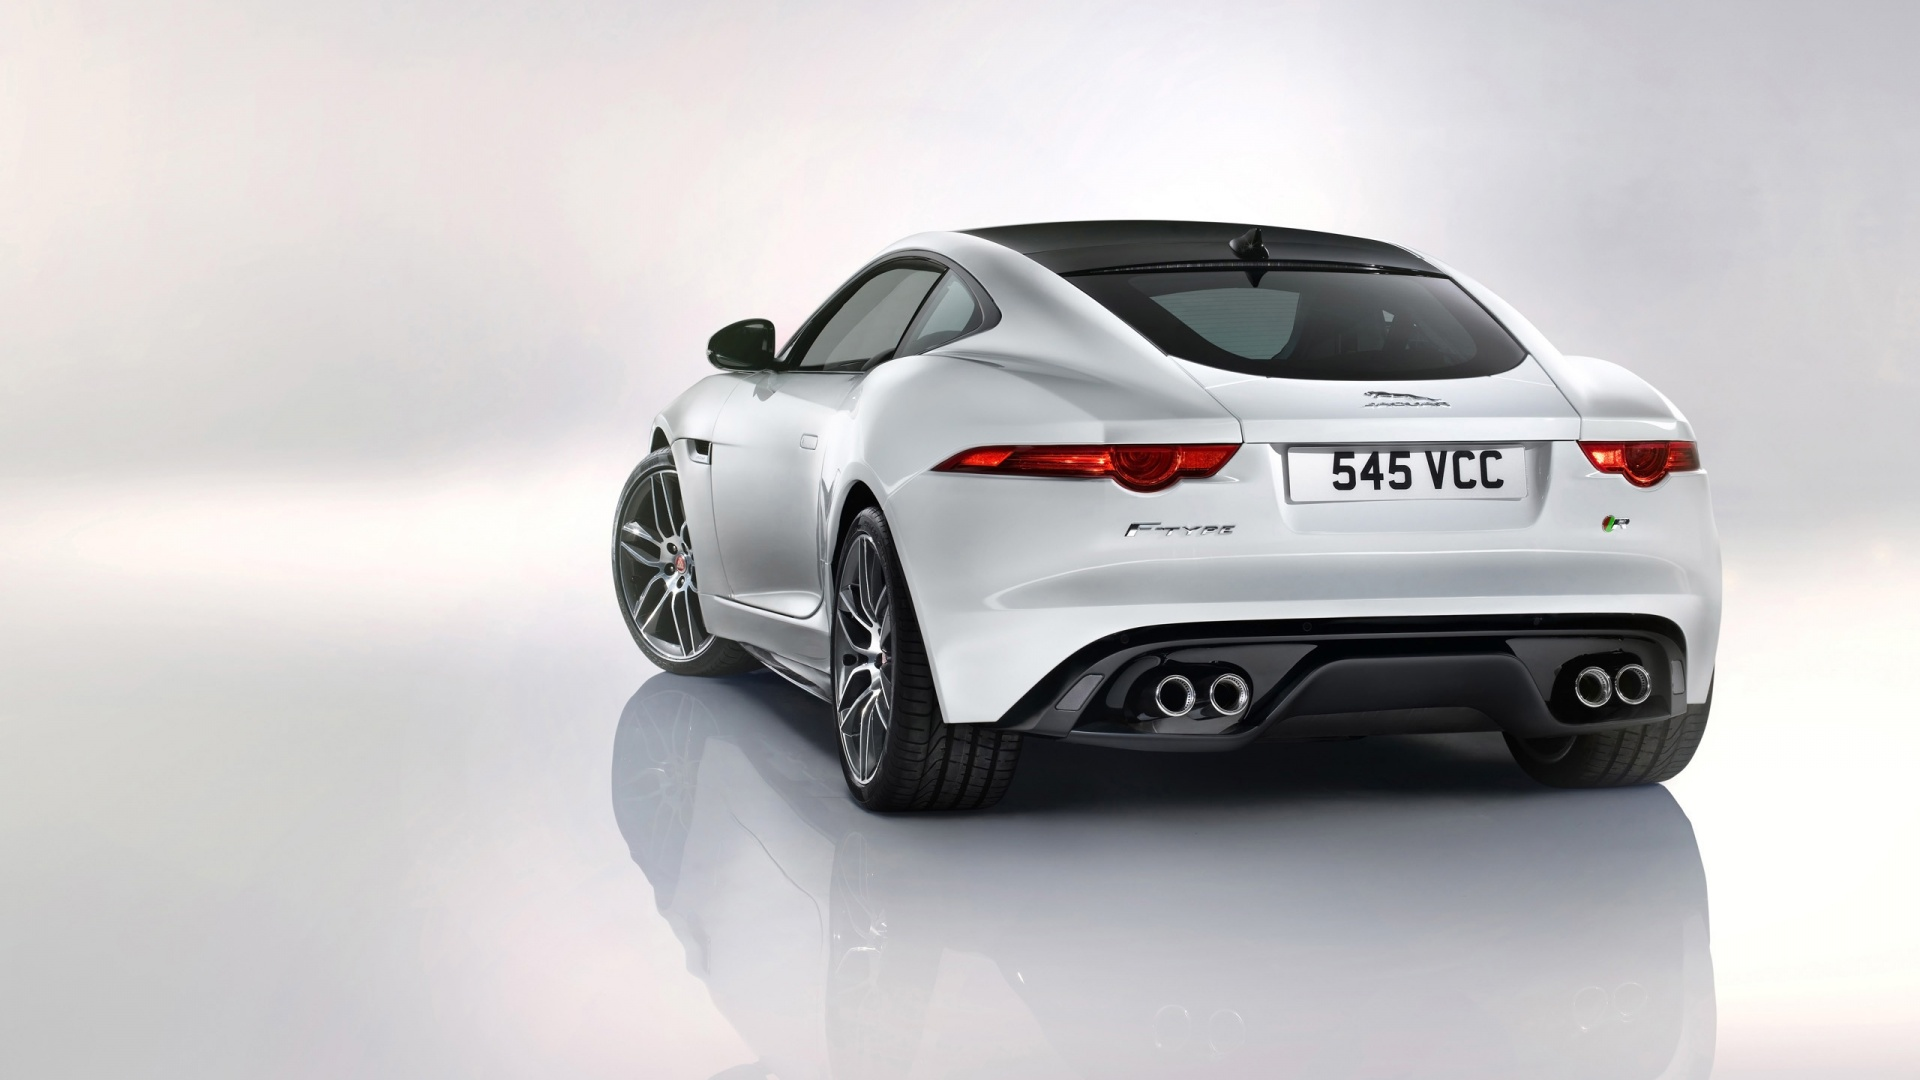 2014 Jaguar F Type R Coupe White 2 Wallpaper HD Car Wallpapers 1920x1080